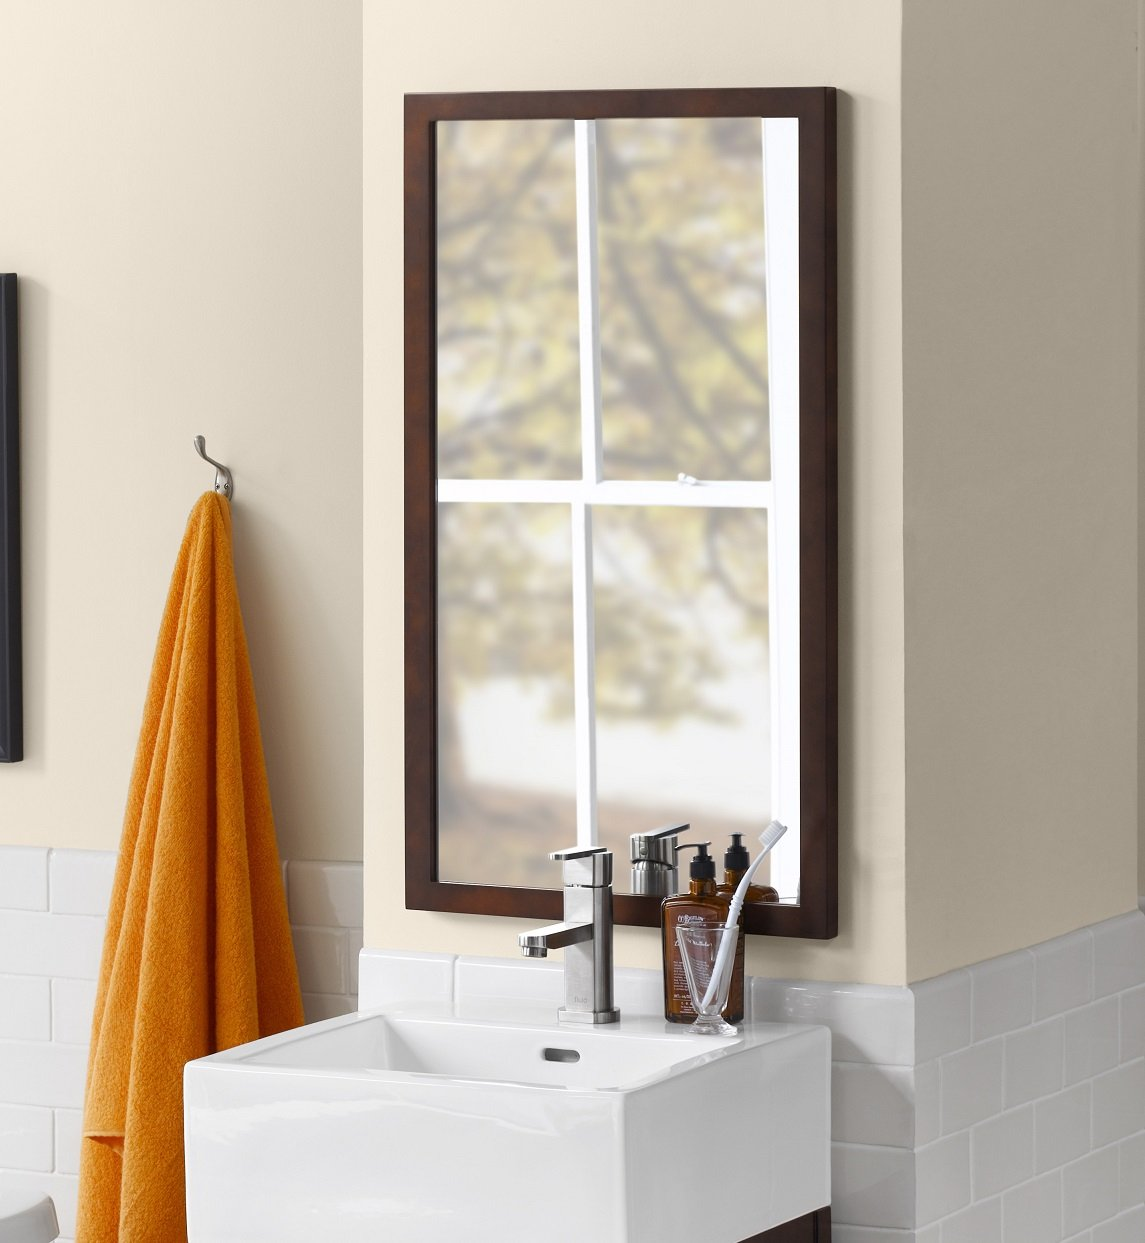 RONBOW Alina 17'' x 31'' Contemporary Solid Wood Frame Wall Decor Rectangle Bathroom Mirror in Vintage Walnut 600118-F07